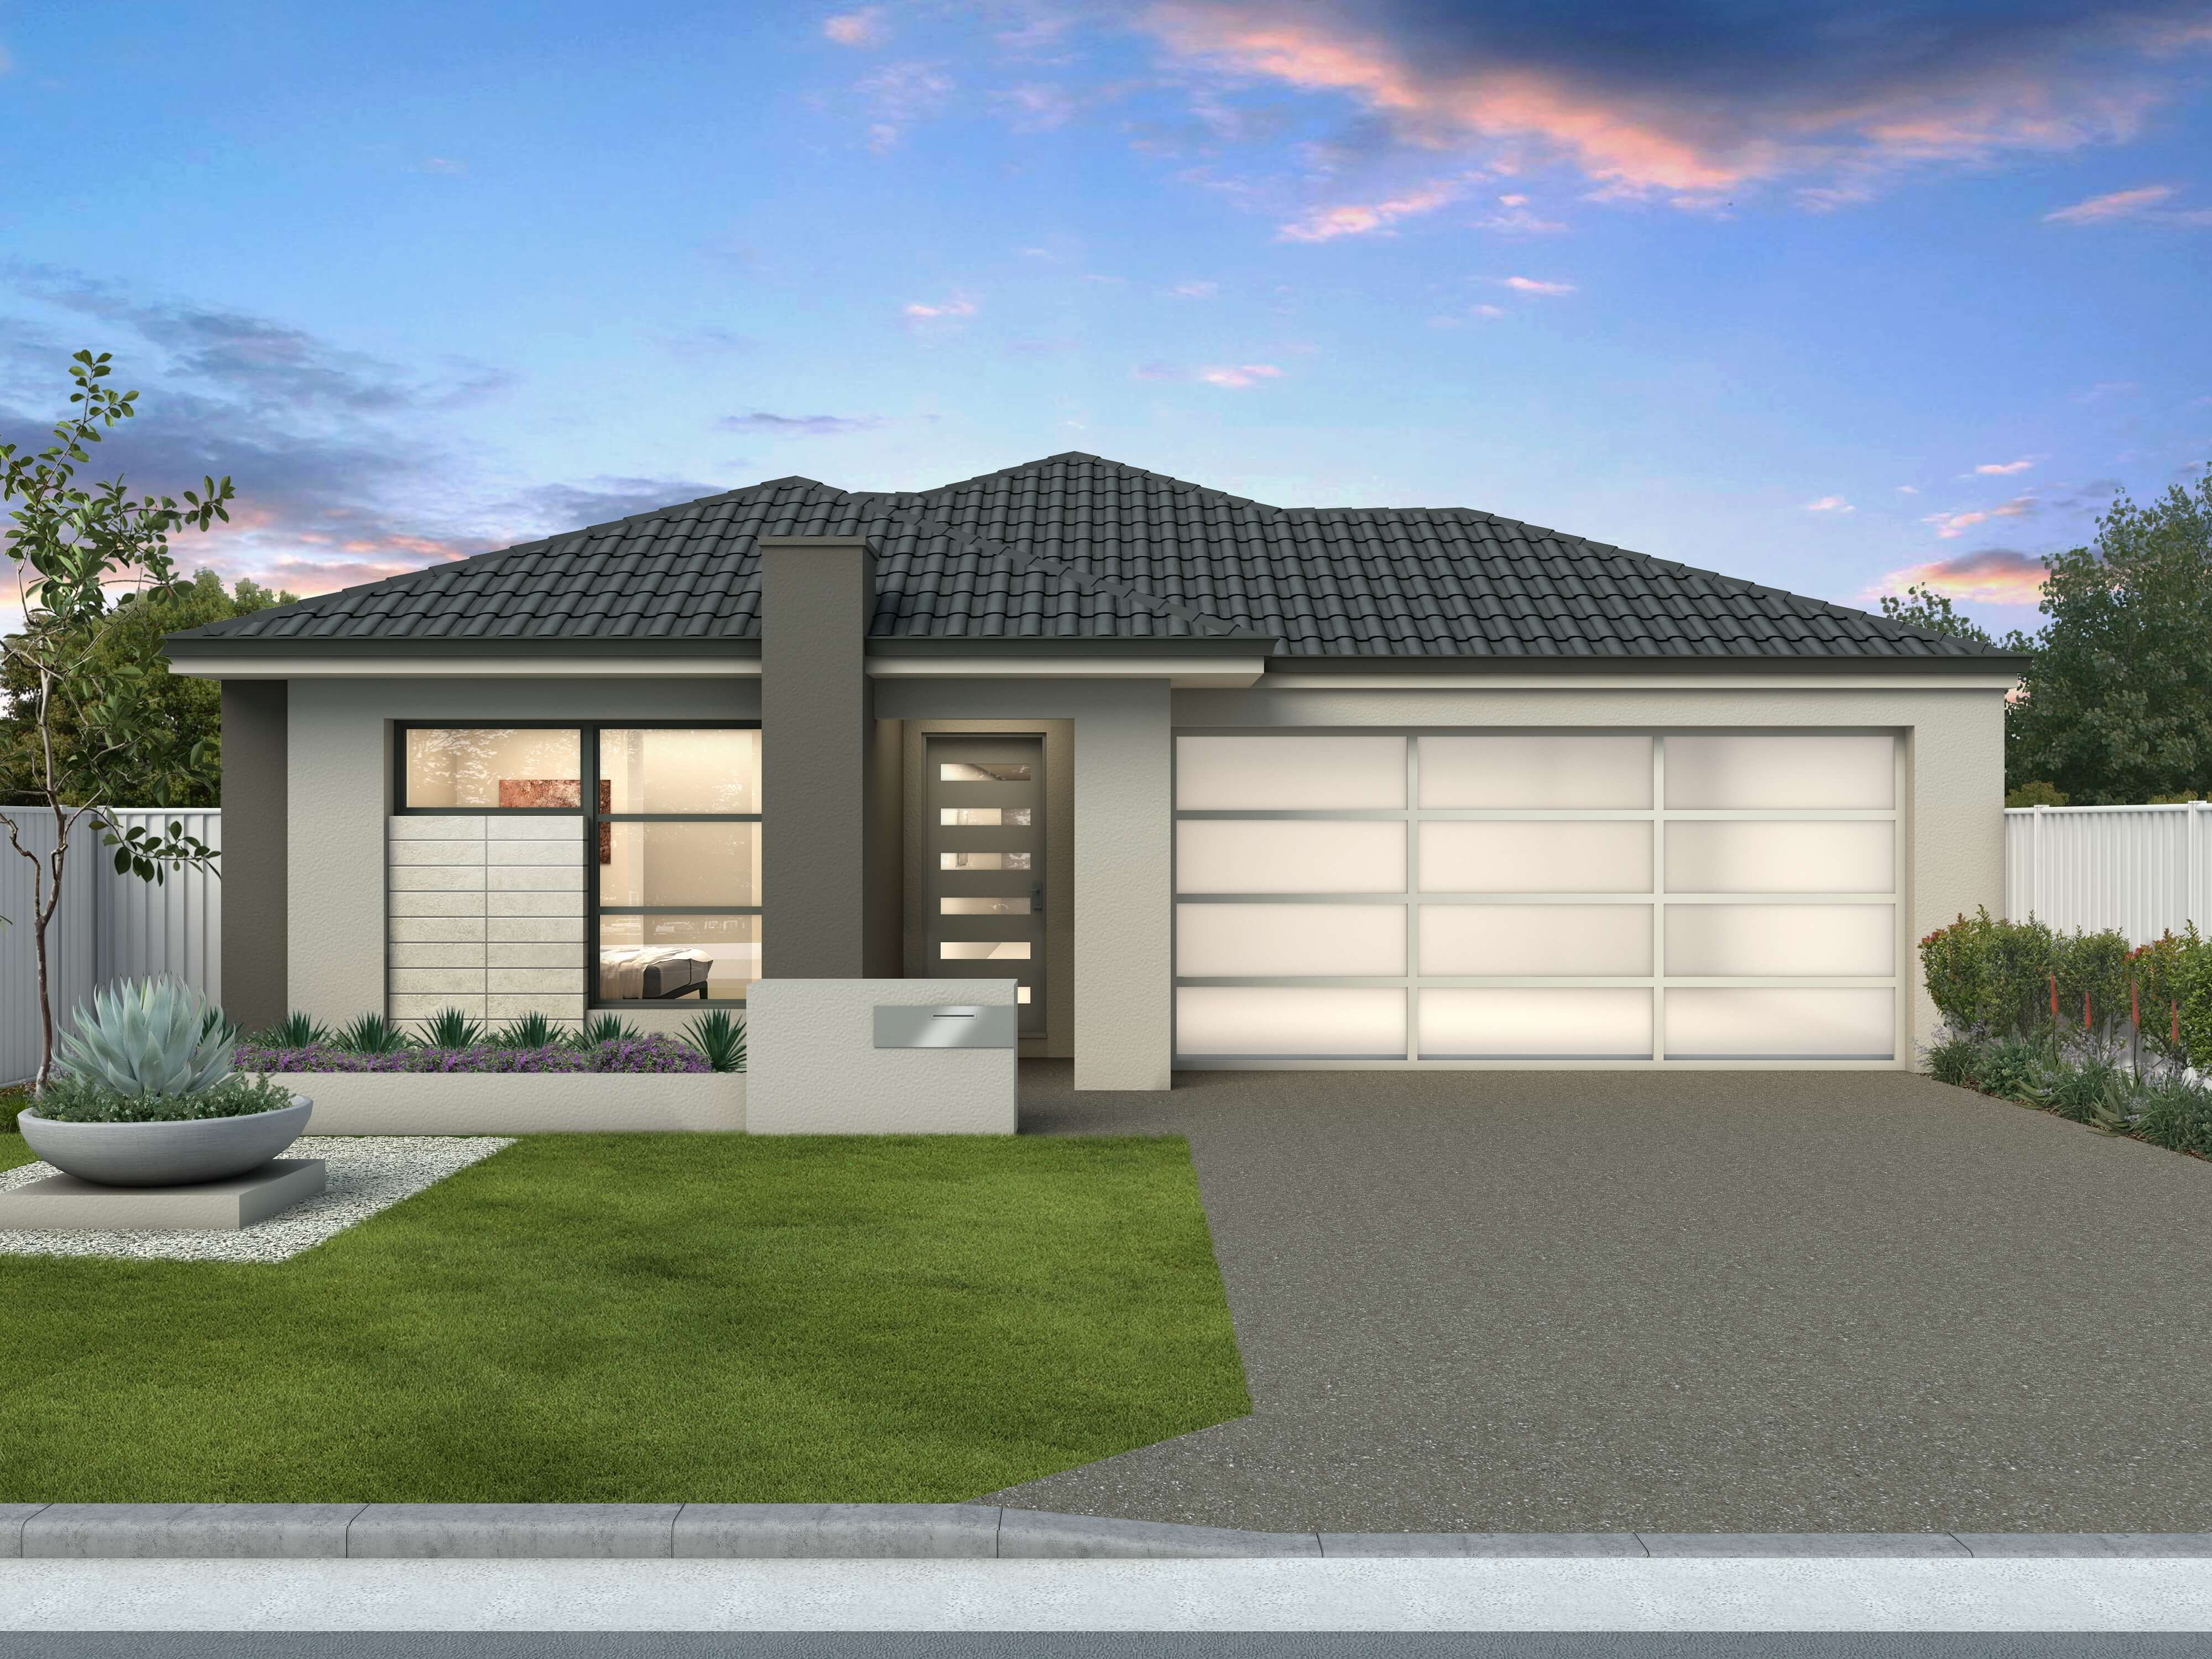 The Bottlebrush, a new home design by Move Homes for Perth families and first time home buyers